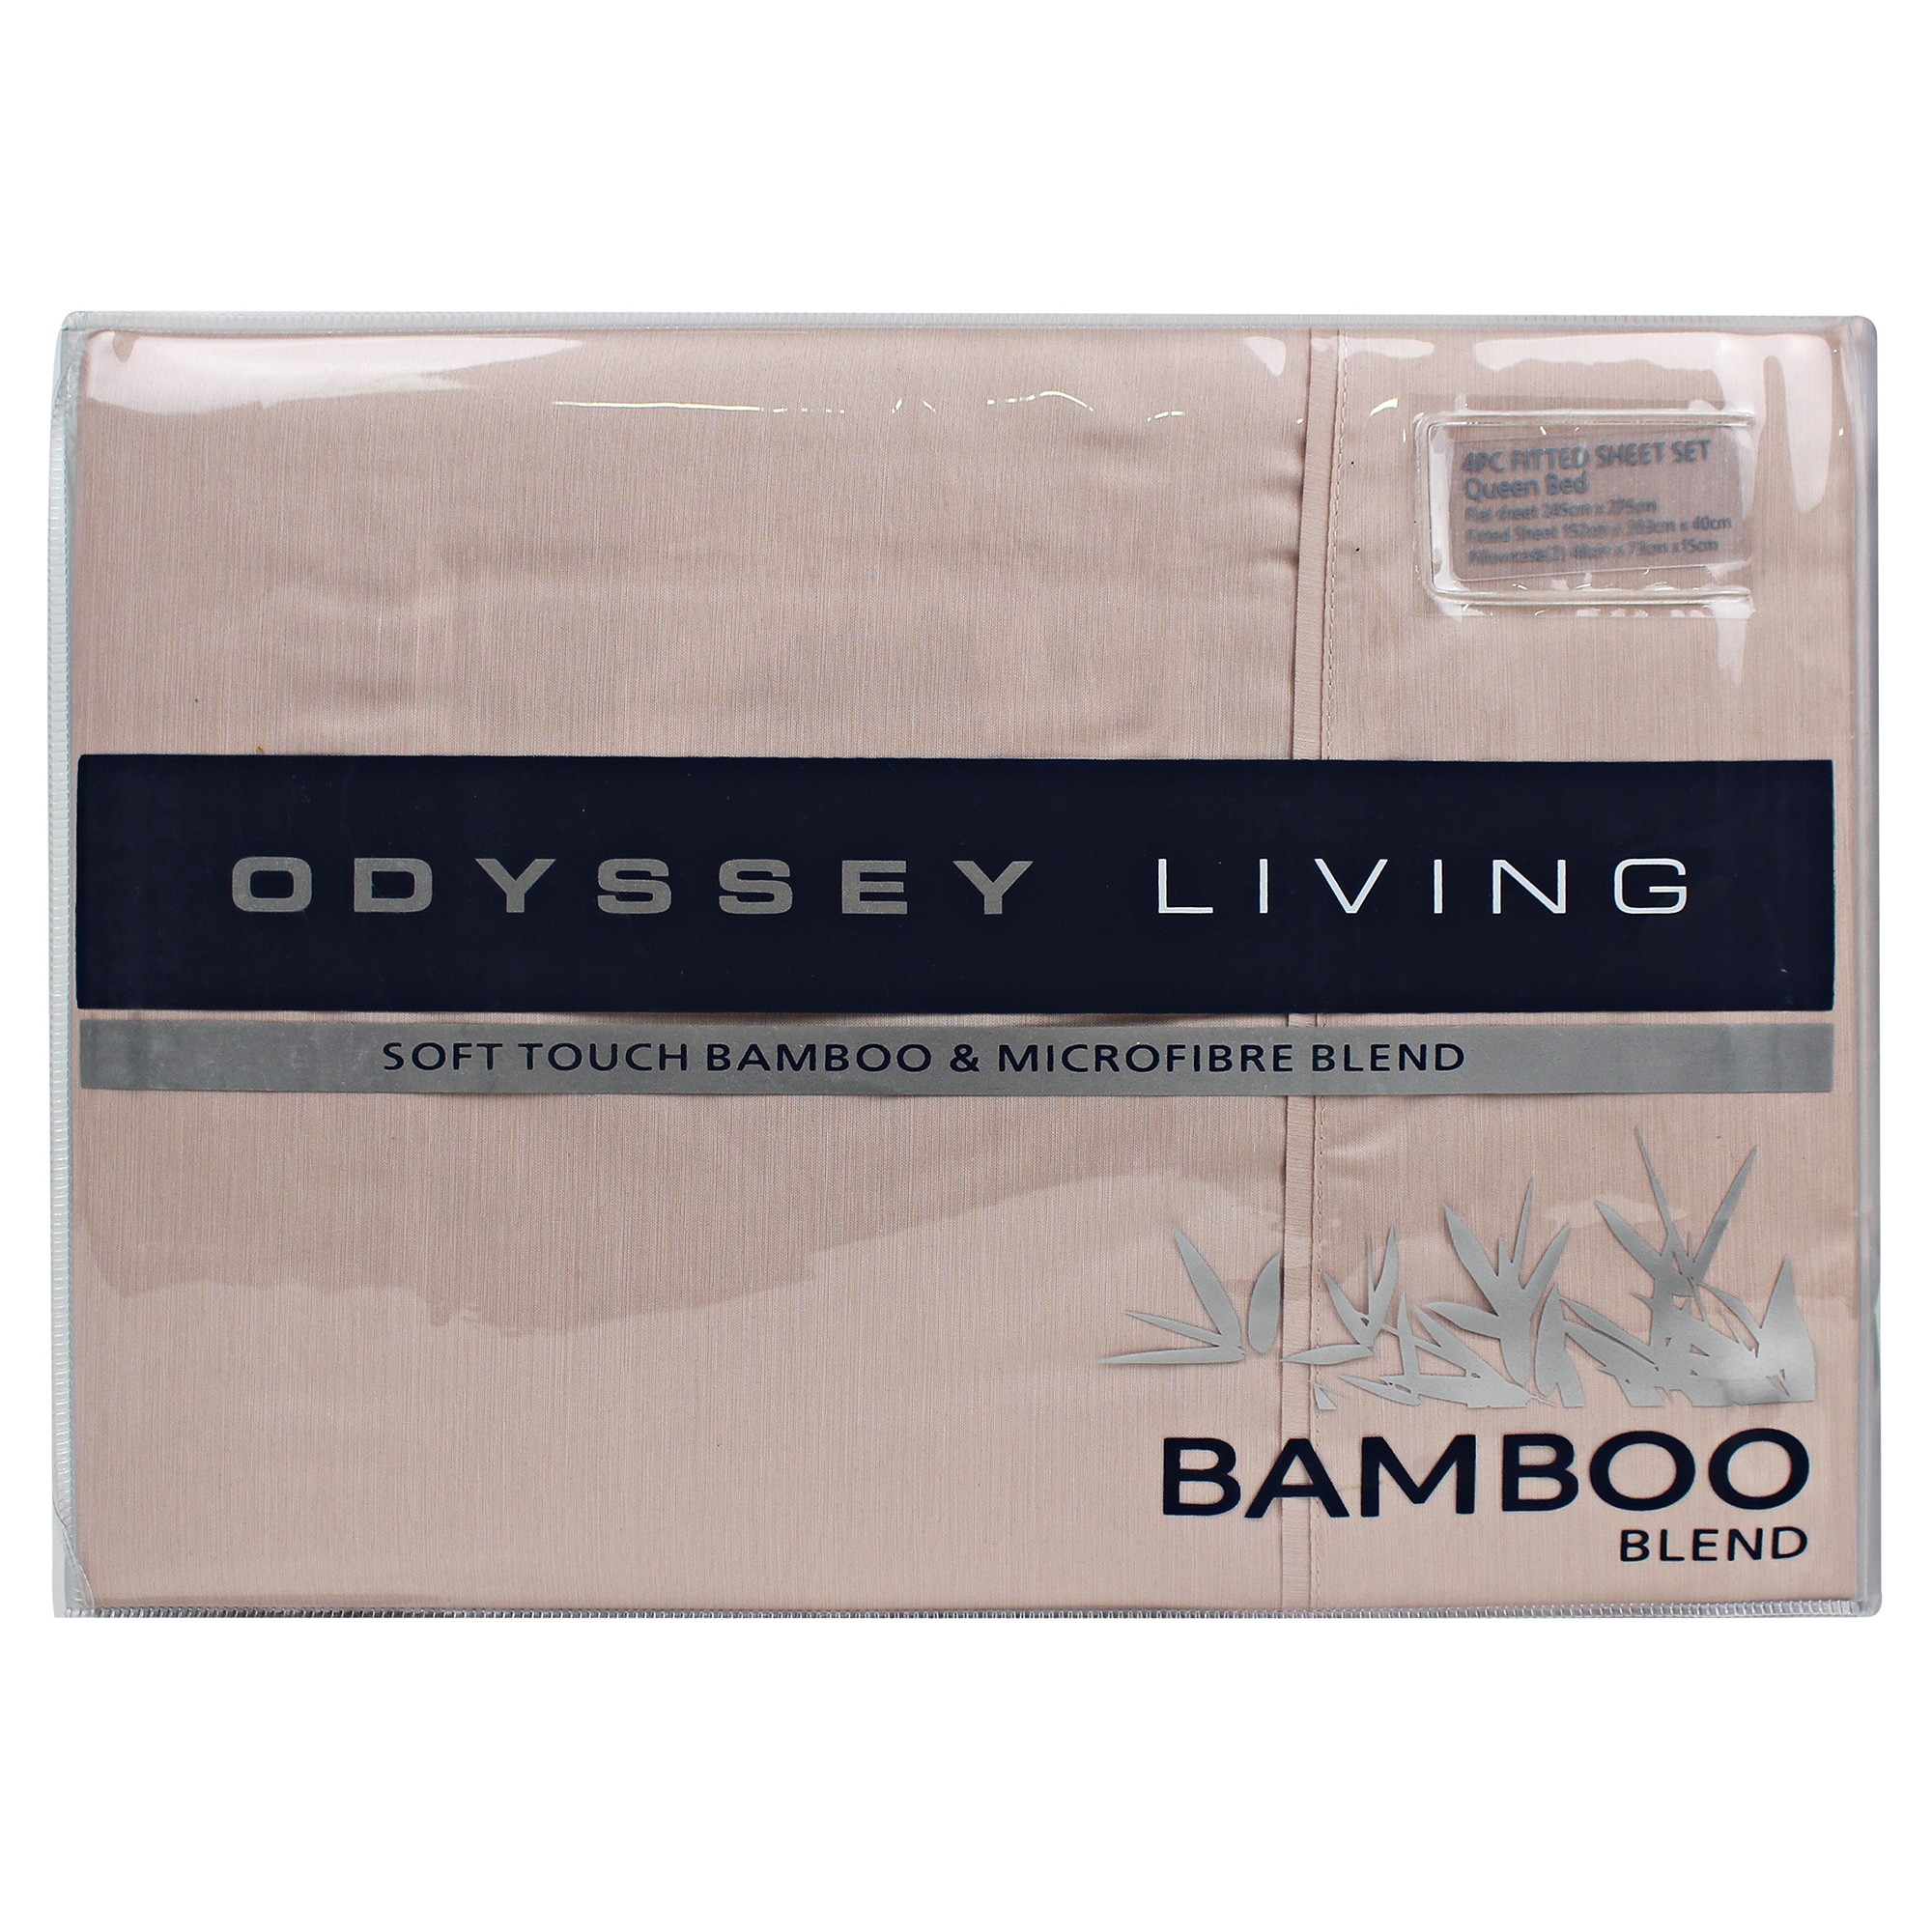 Odyssey Living Soft Touch Bamboo & Microfibre Blend Sheet Set, King, Shell